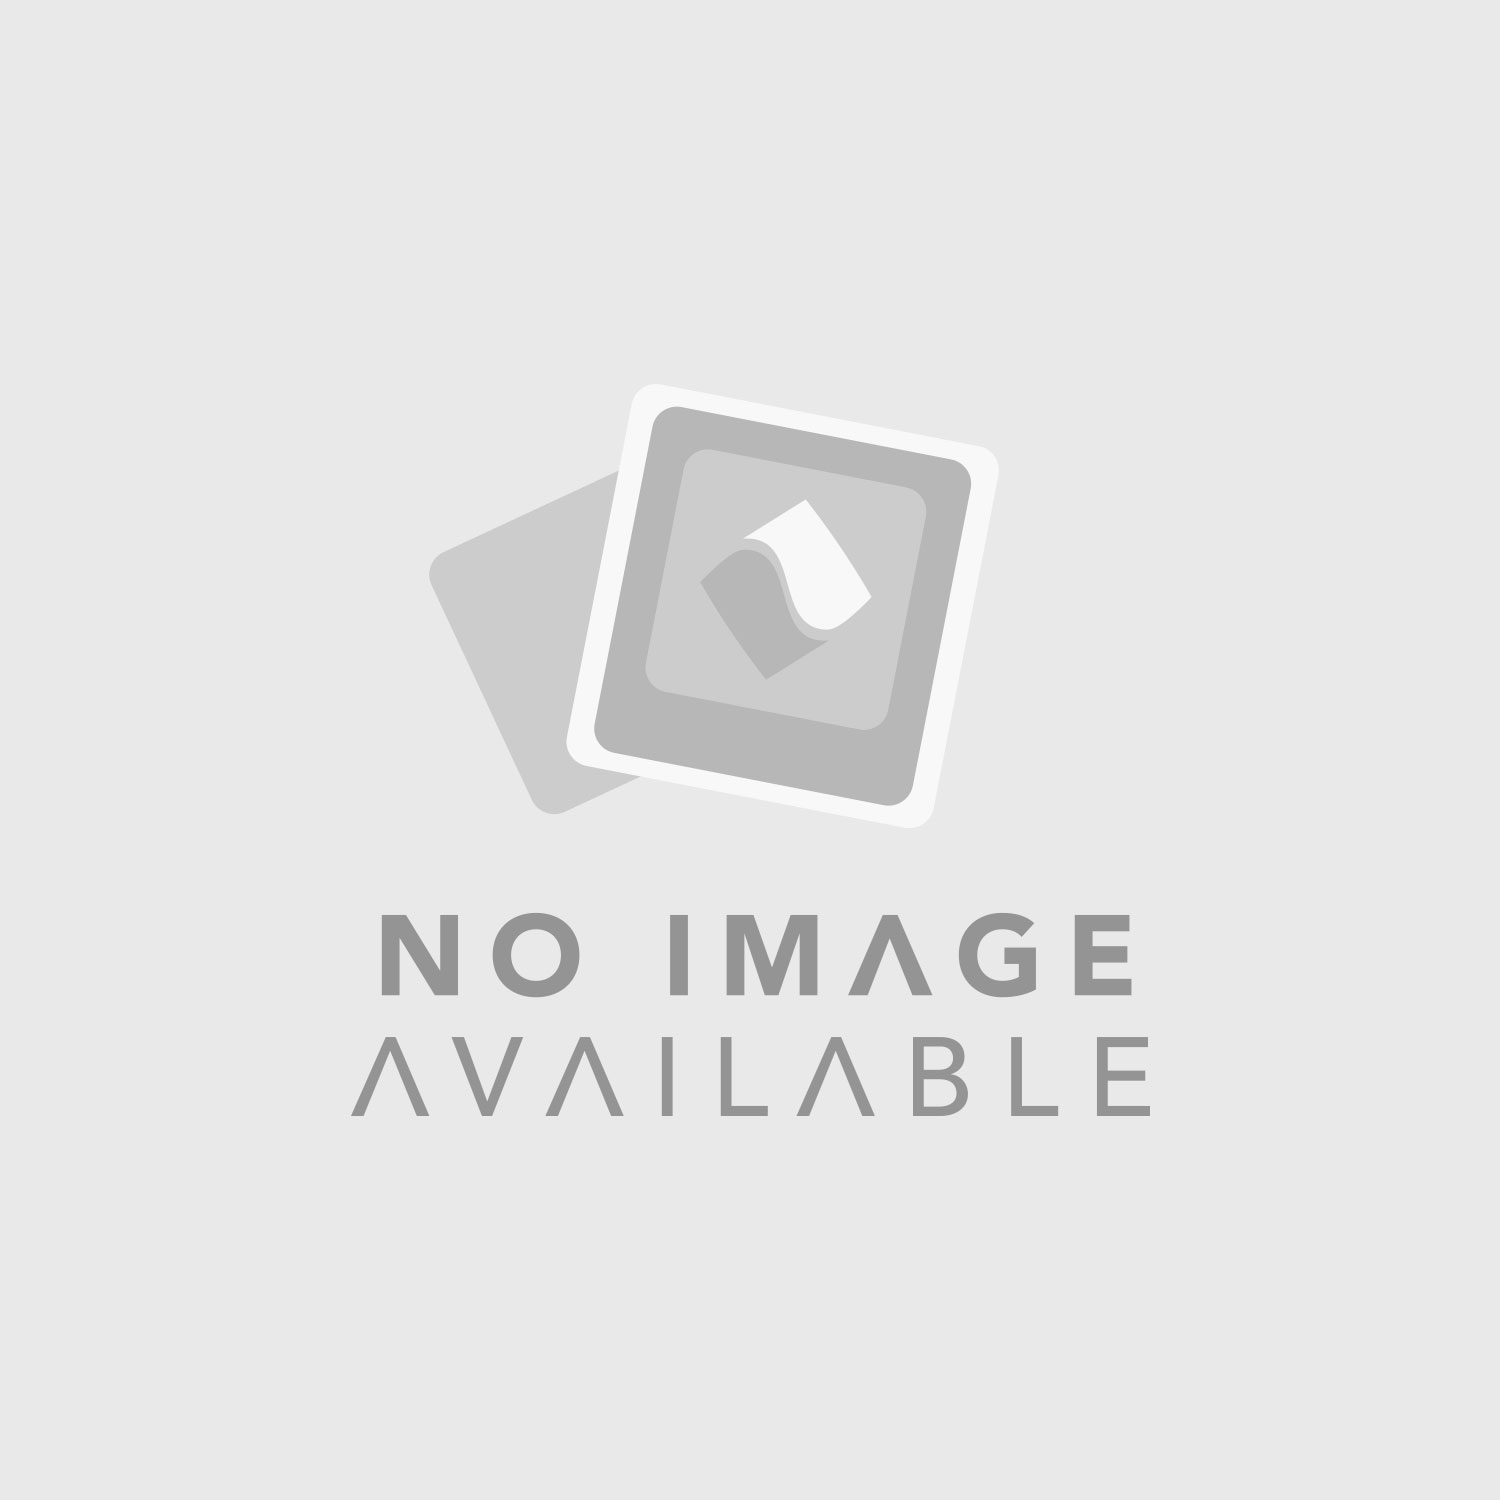 PanaVise & Weller Ultimate Soldering Bundle with Iron, Vise, Solder and Many Accessories